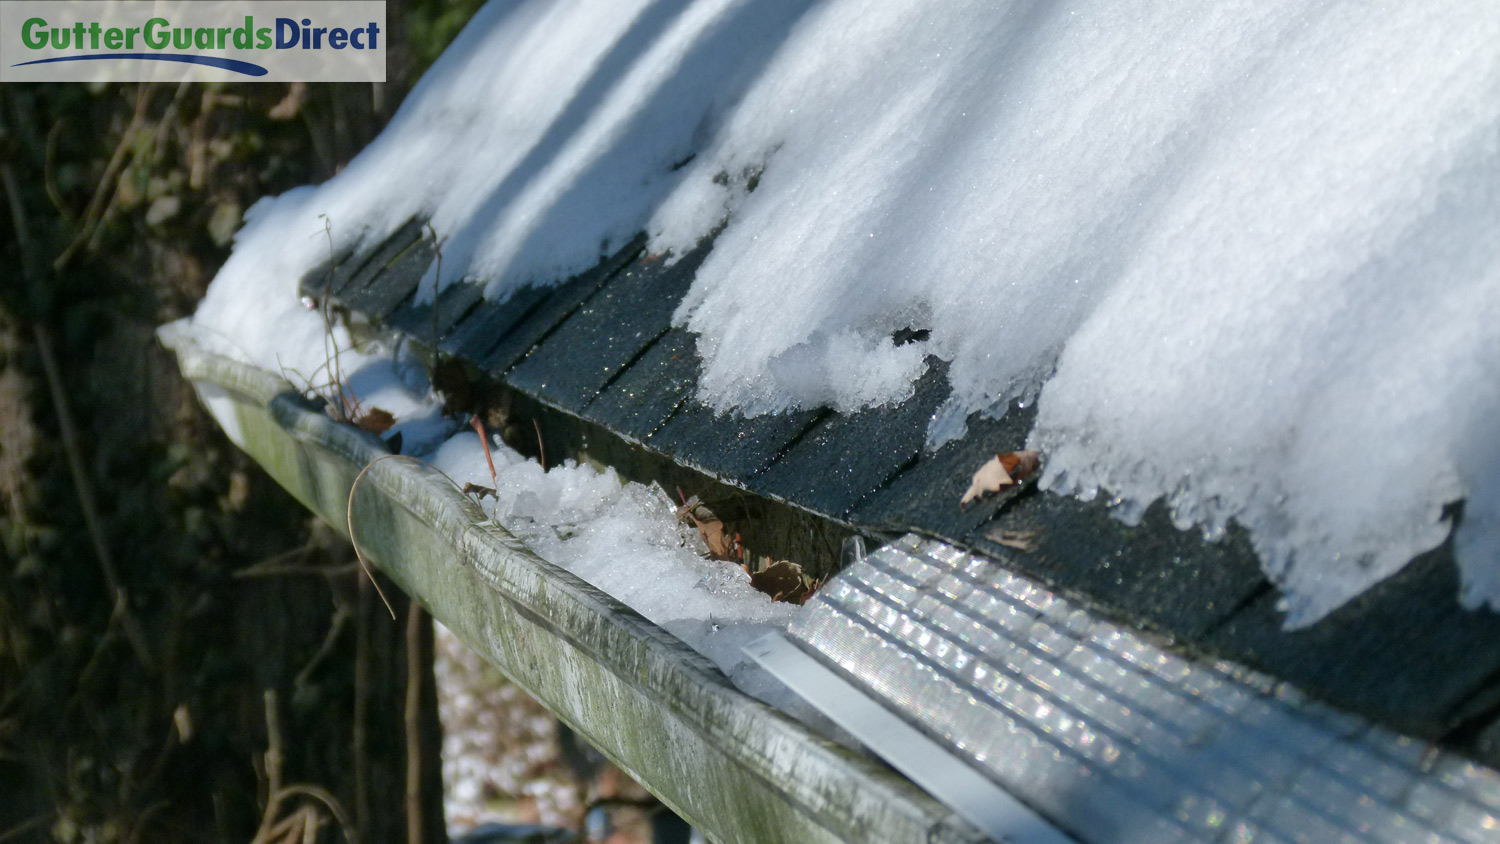 Icicles Go Better With Gutter Guards Than Open Gutters